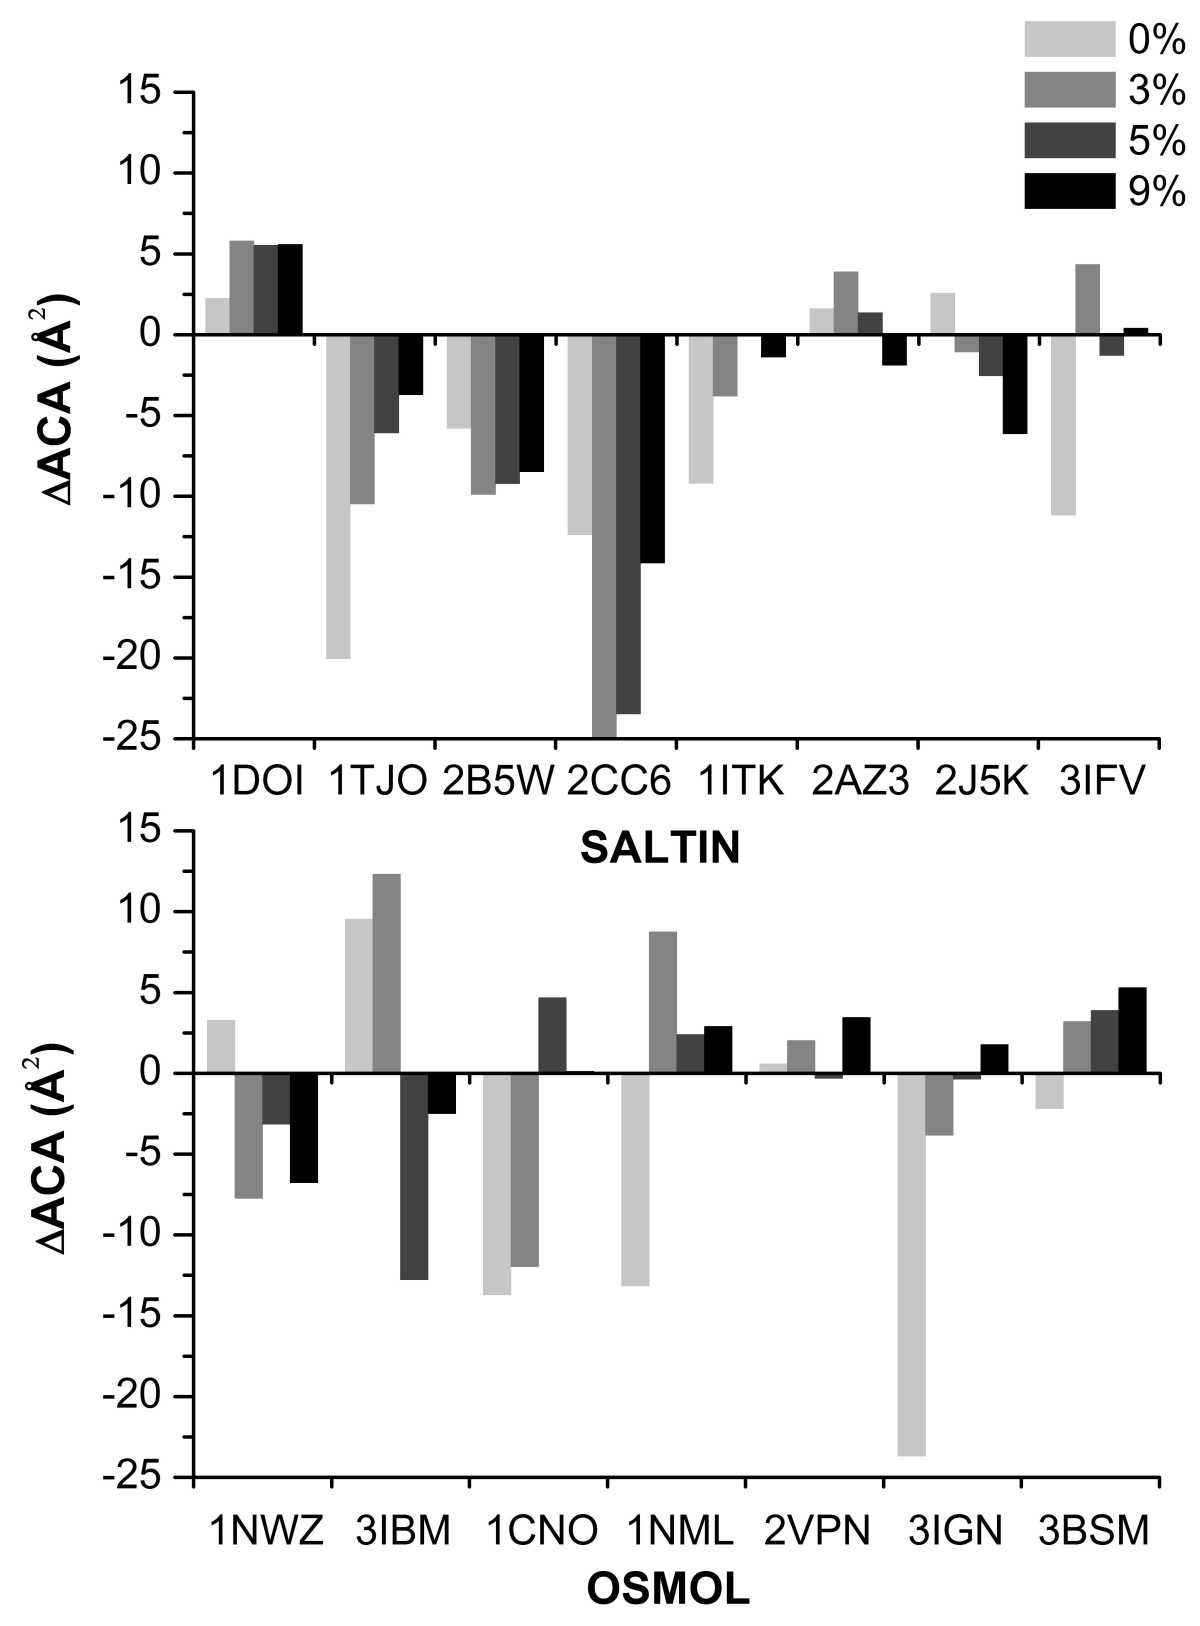 http://static-content.springer.com/image/art%3A10.1186%2F1472-6807-11-50/MediaObjects/12900_2011_Article_395_Fig1_HTML.jpg